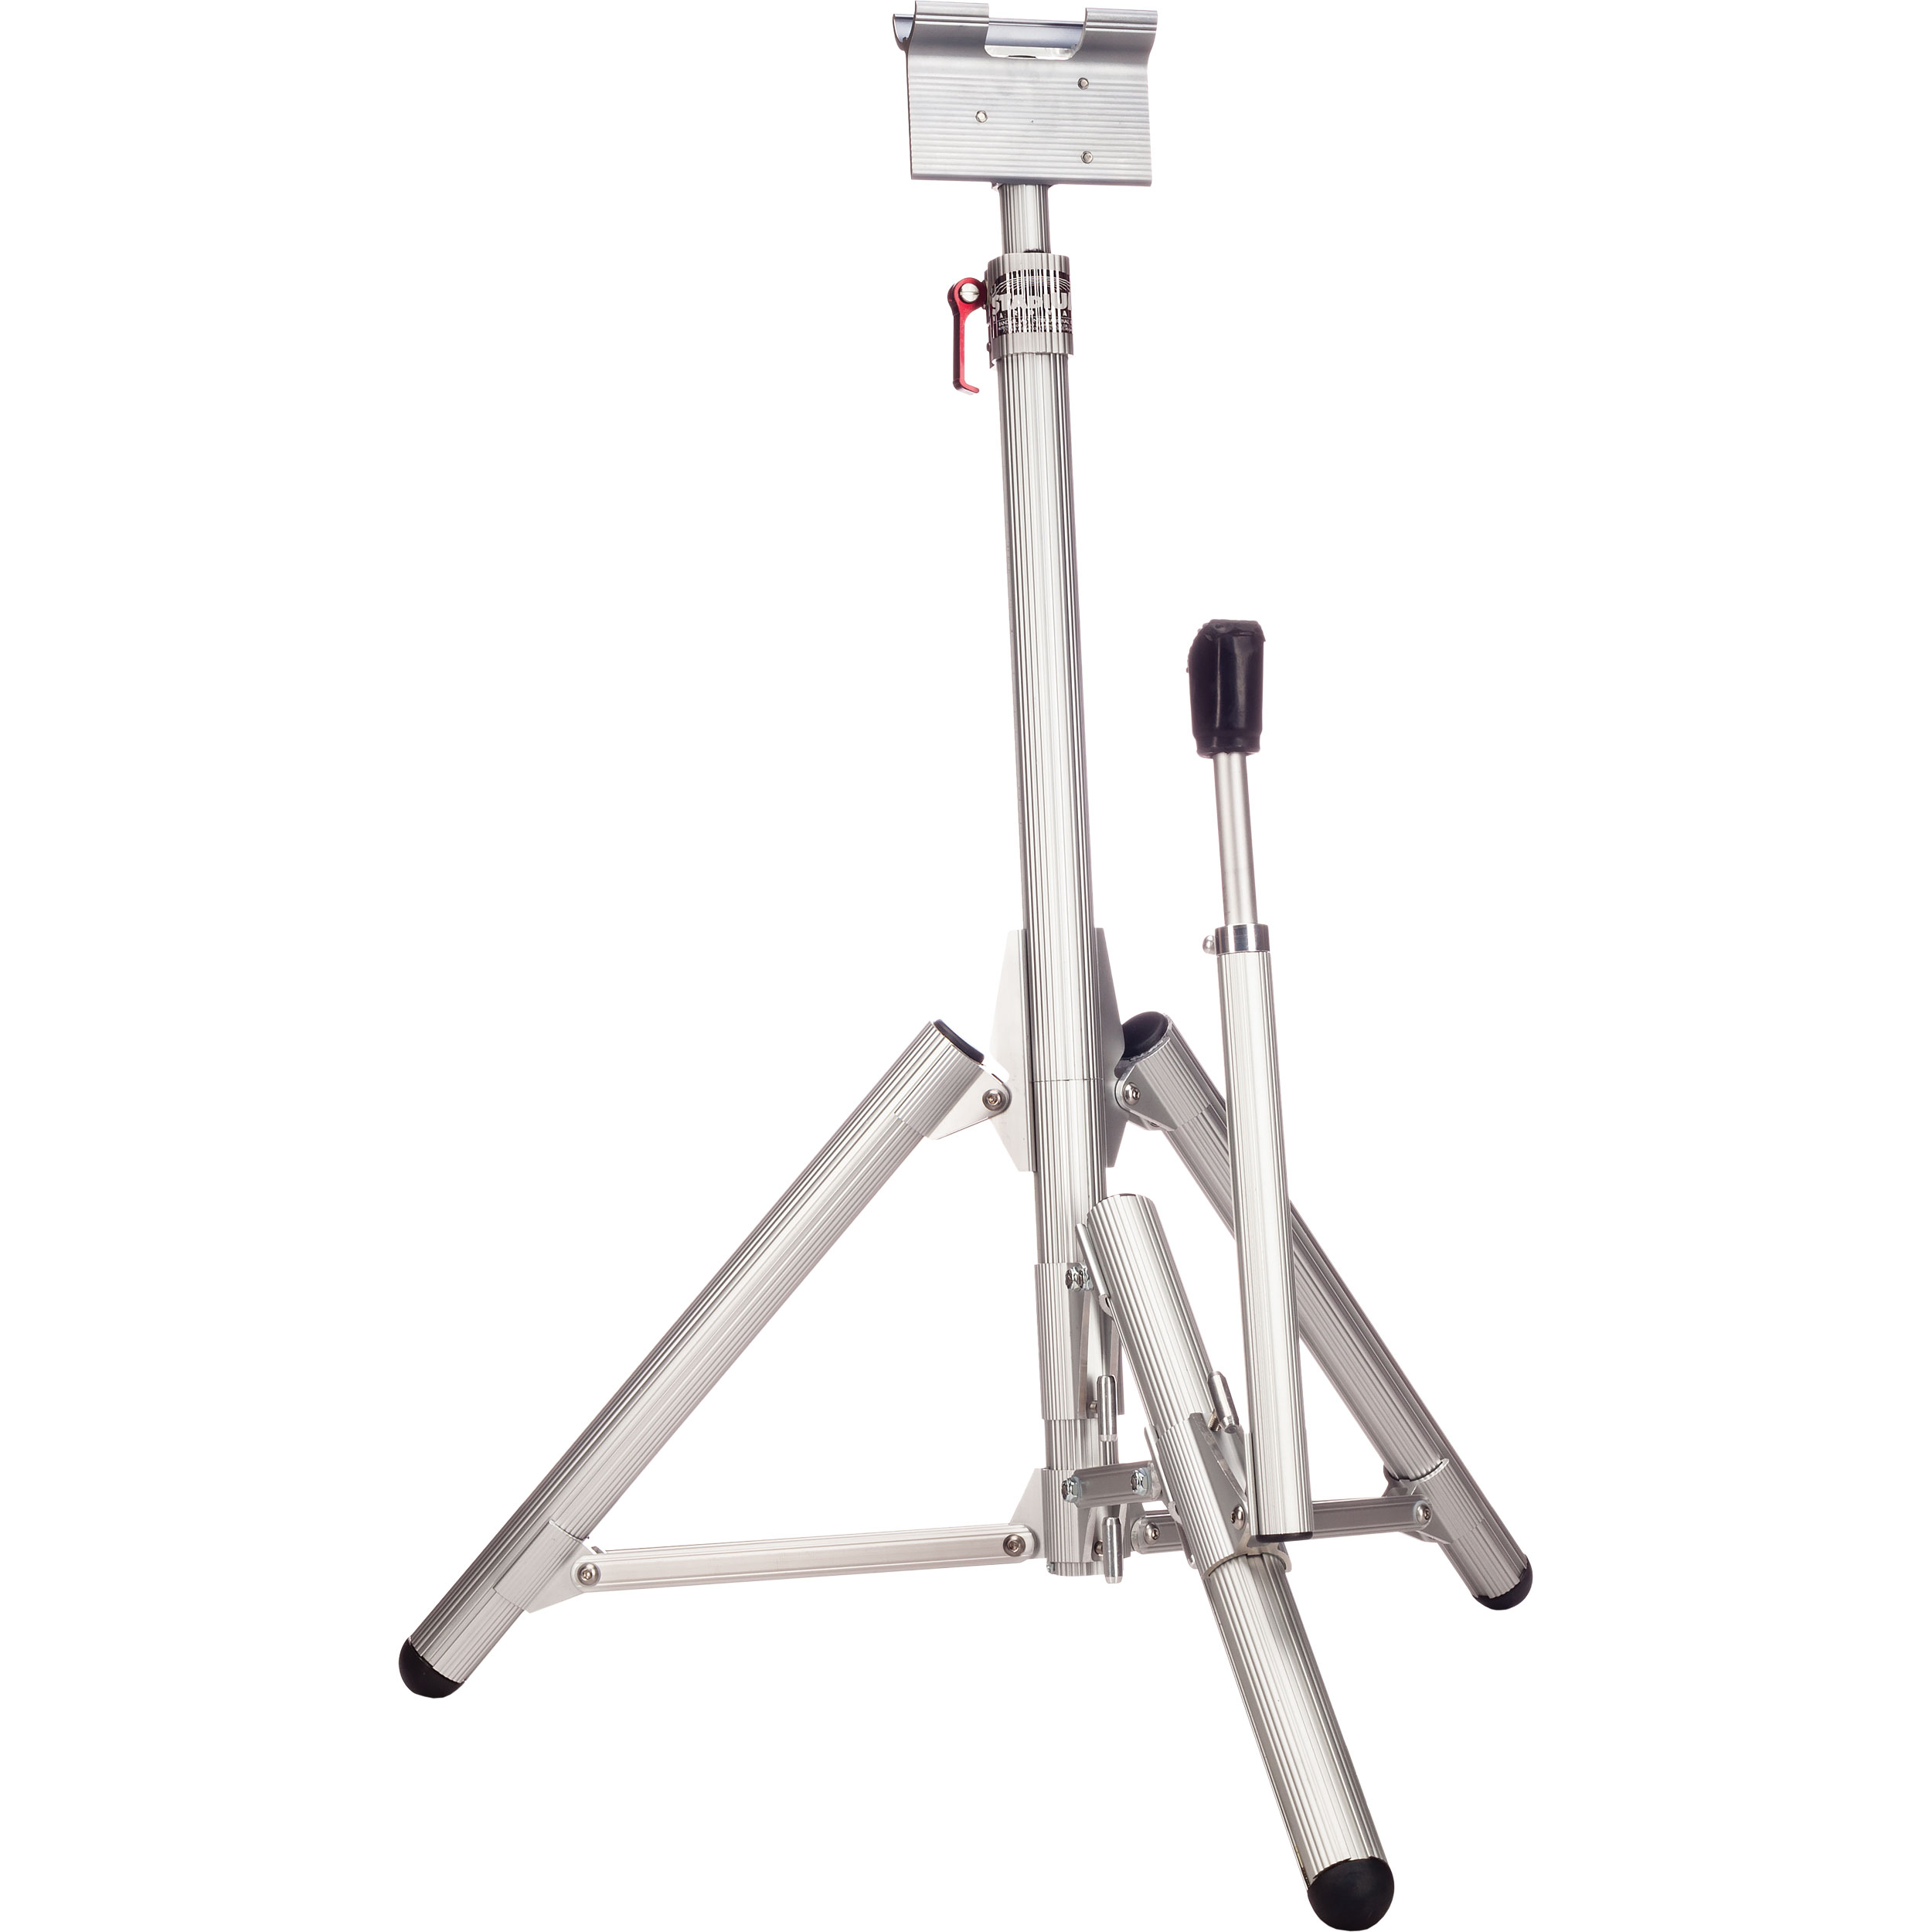 Ludwig/Randall May AIRlift Stadium Hardware Marching Tenor Stand